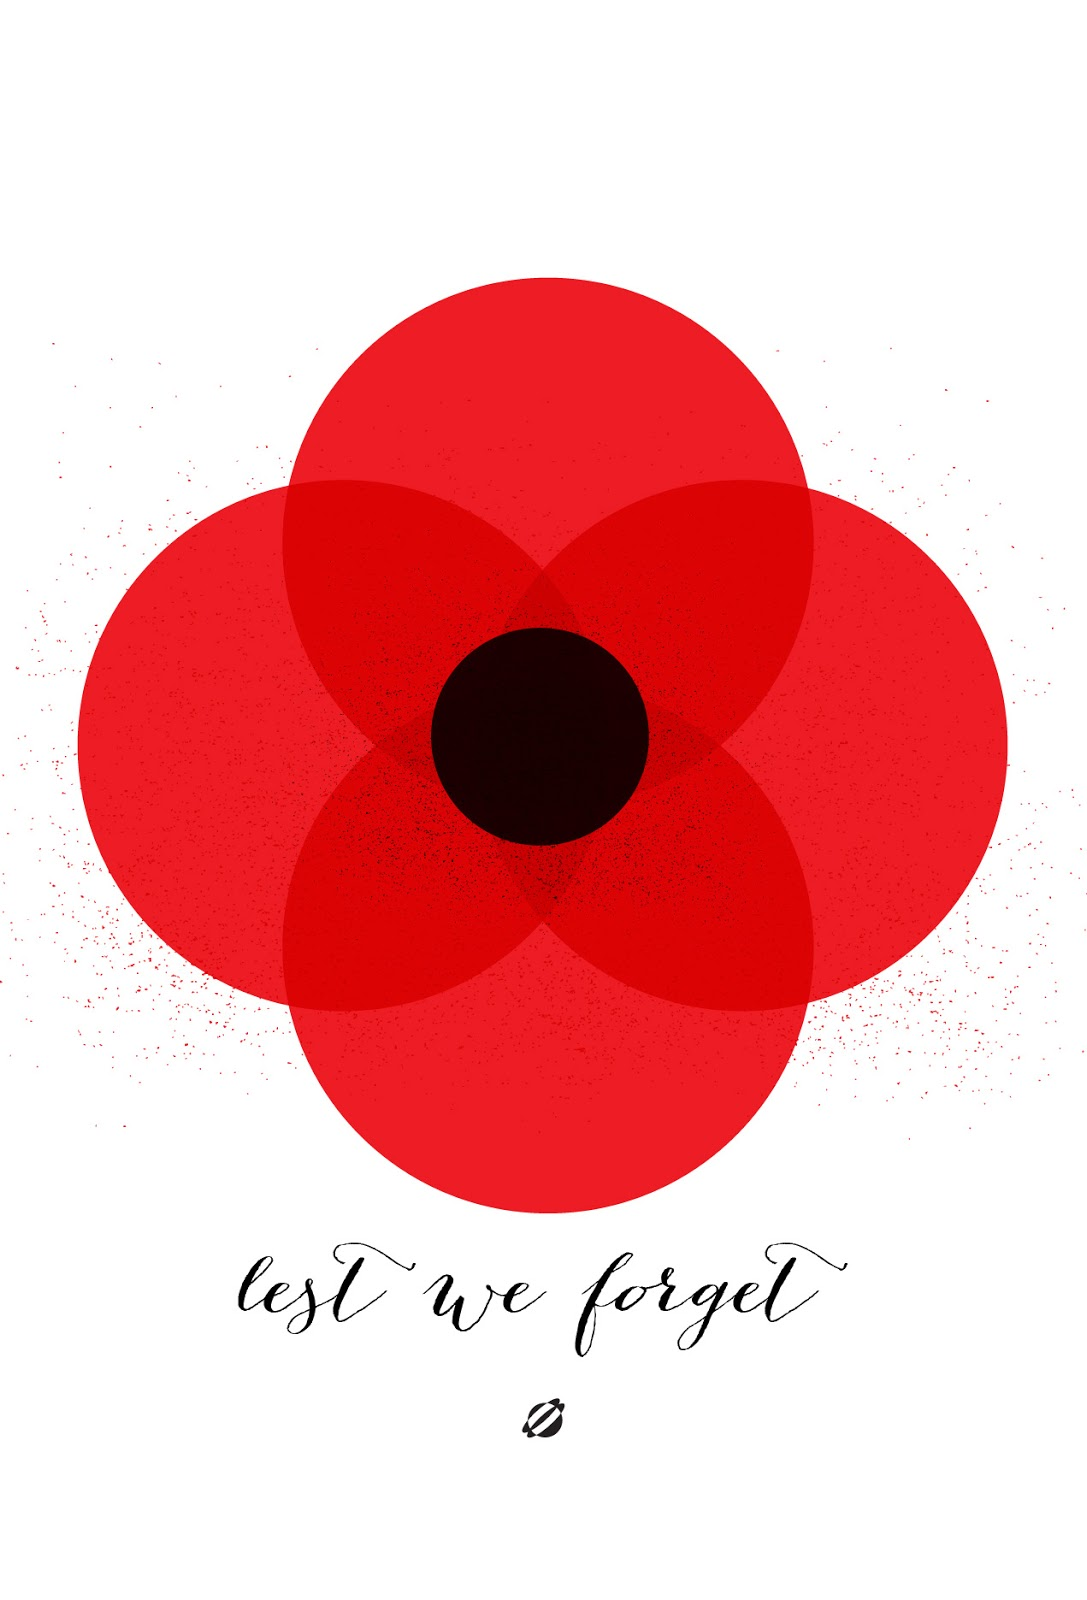 LostBumblebee 2013 Free Printable- Remembrance Day - Lest We Forget